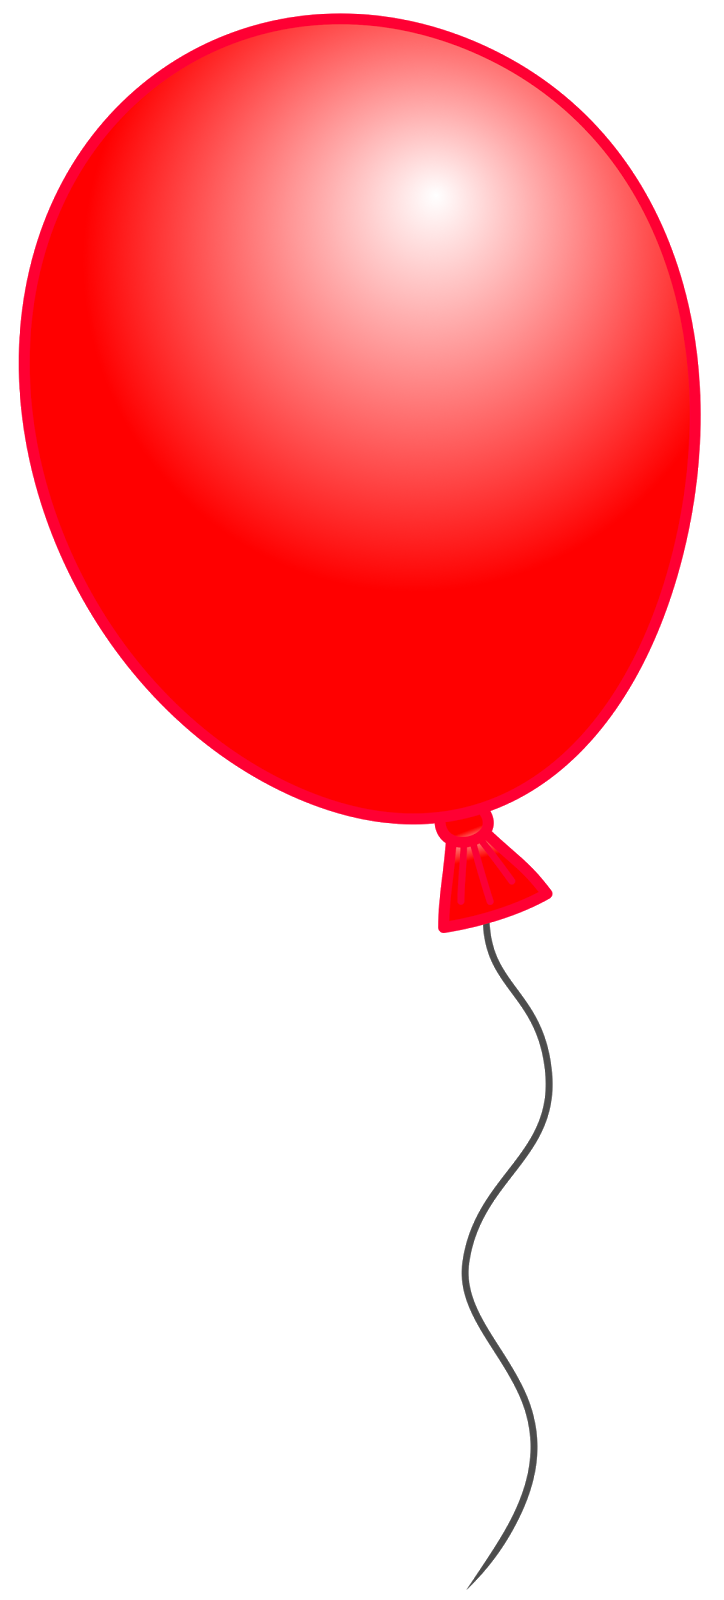 724x1600 Clipart Balloon Picture